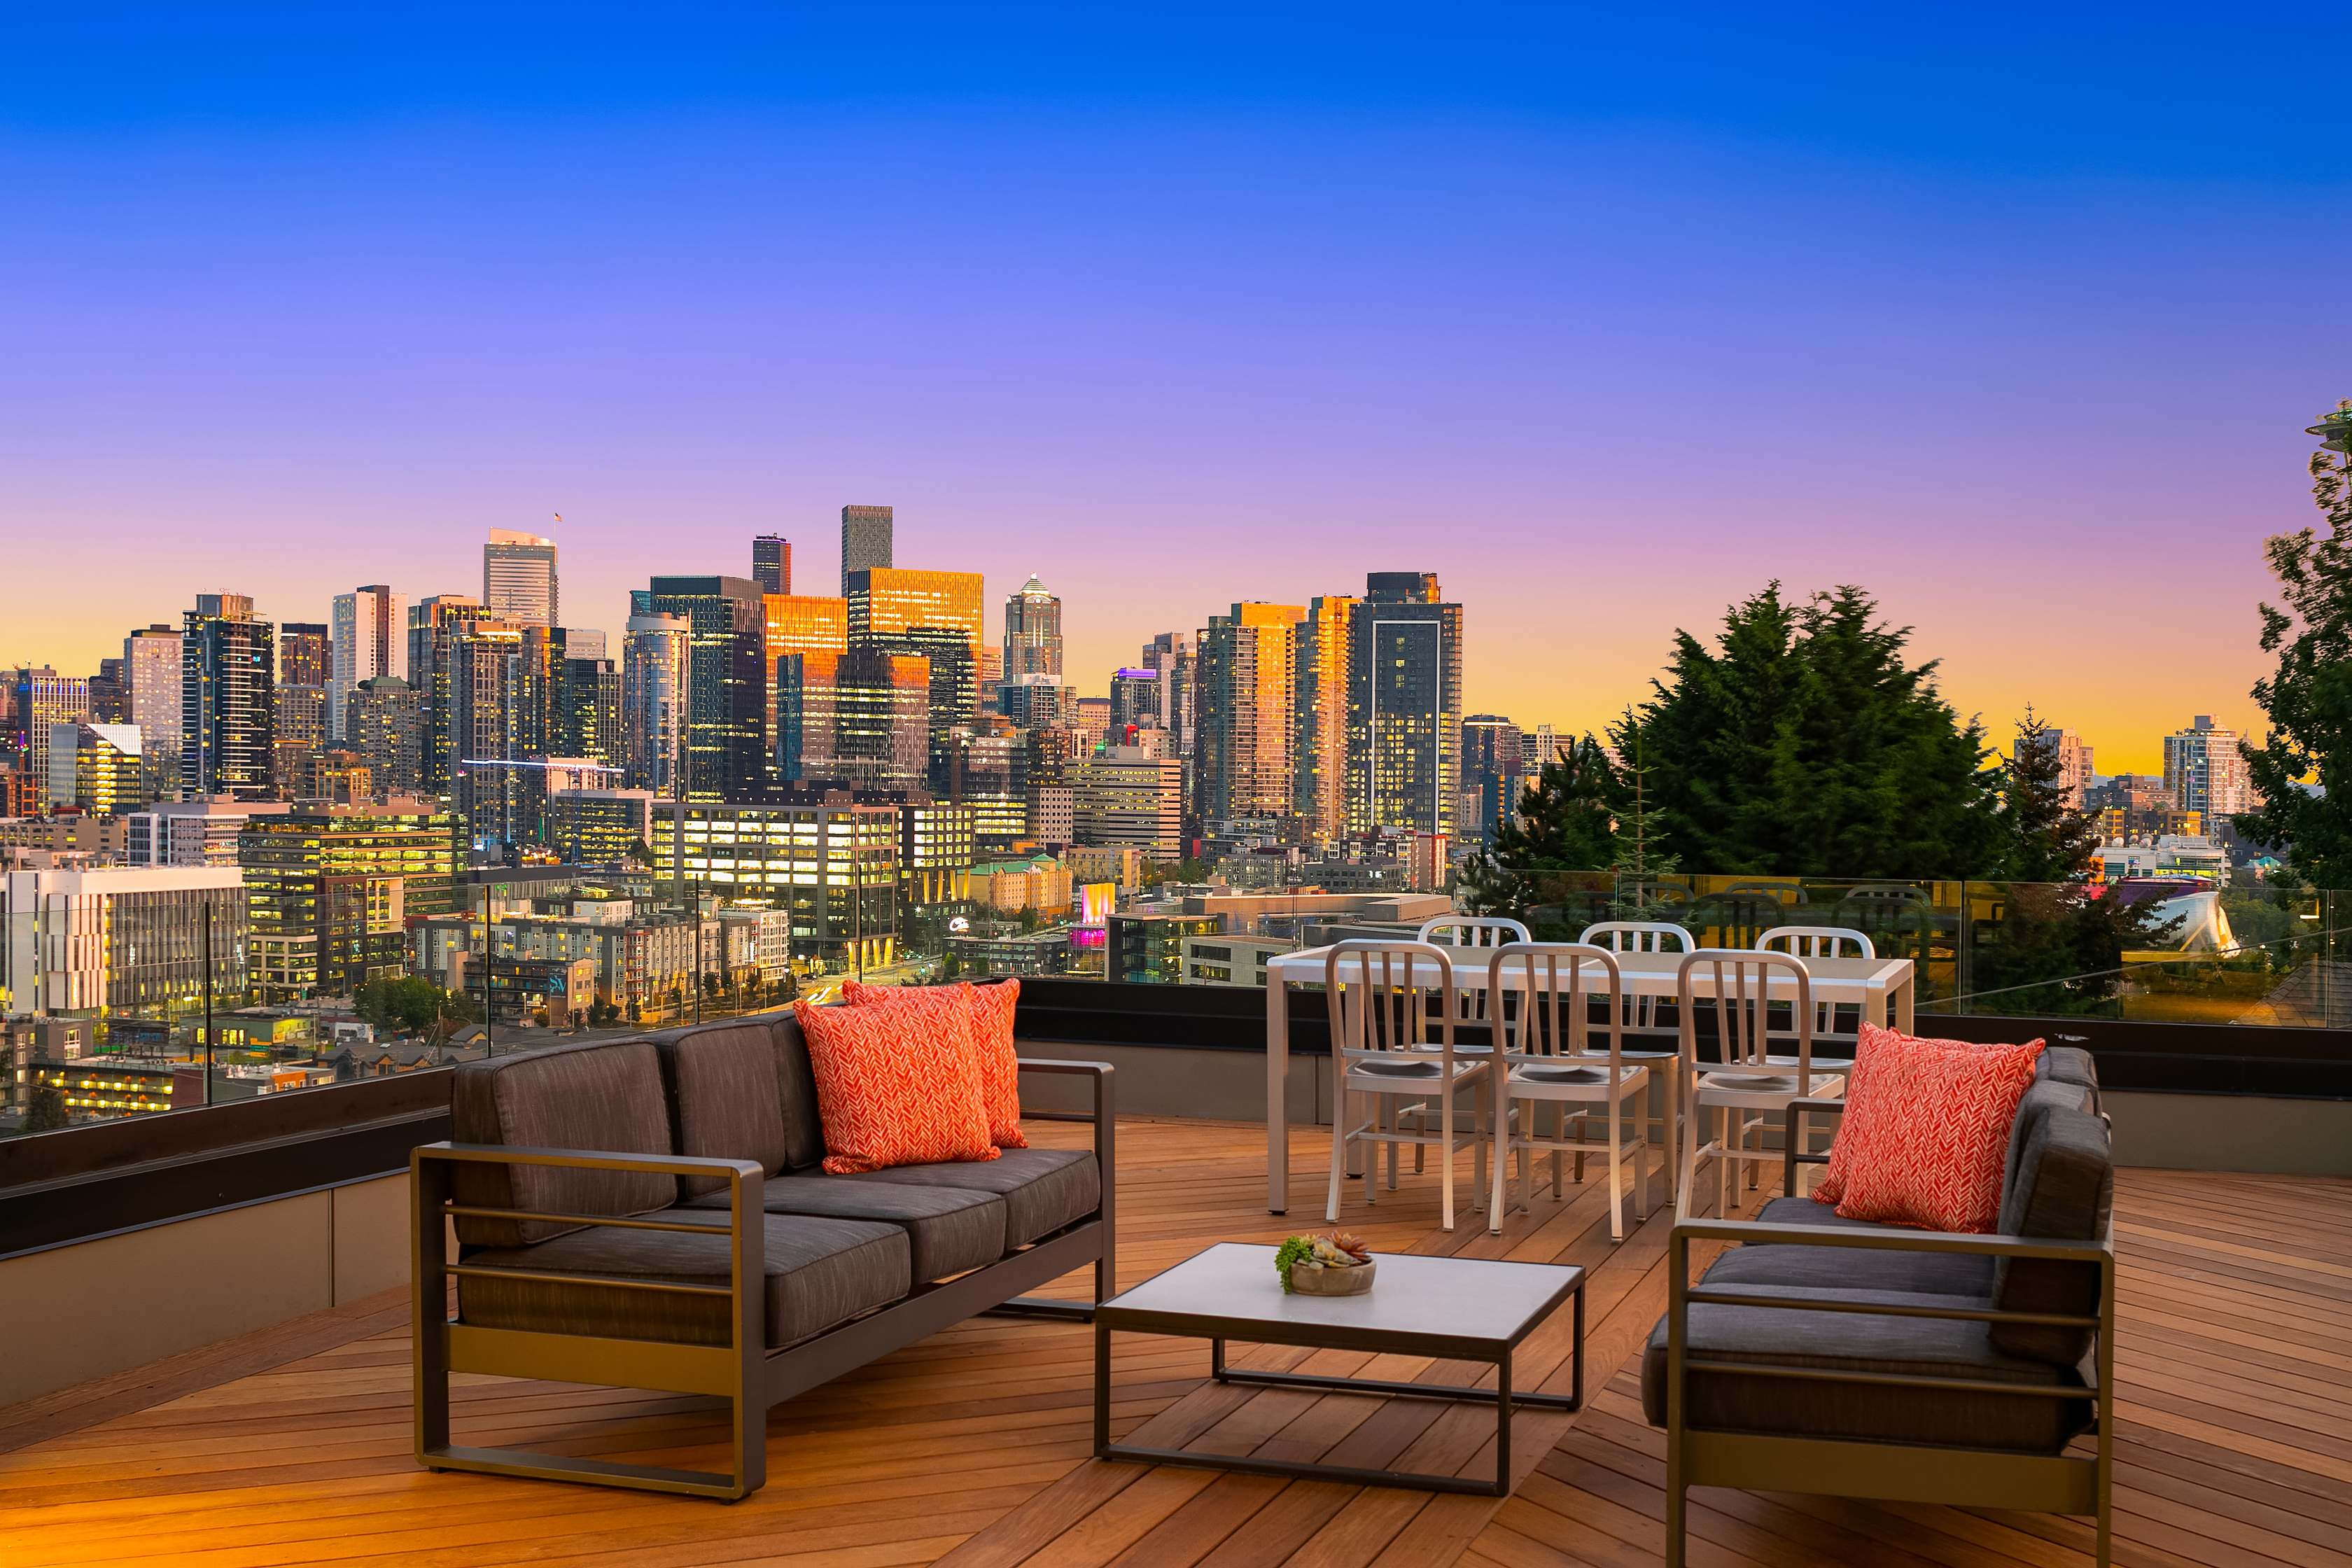 This home developed by Eugene Sherman features stunning views of the city skyline and nearby Lake Union.